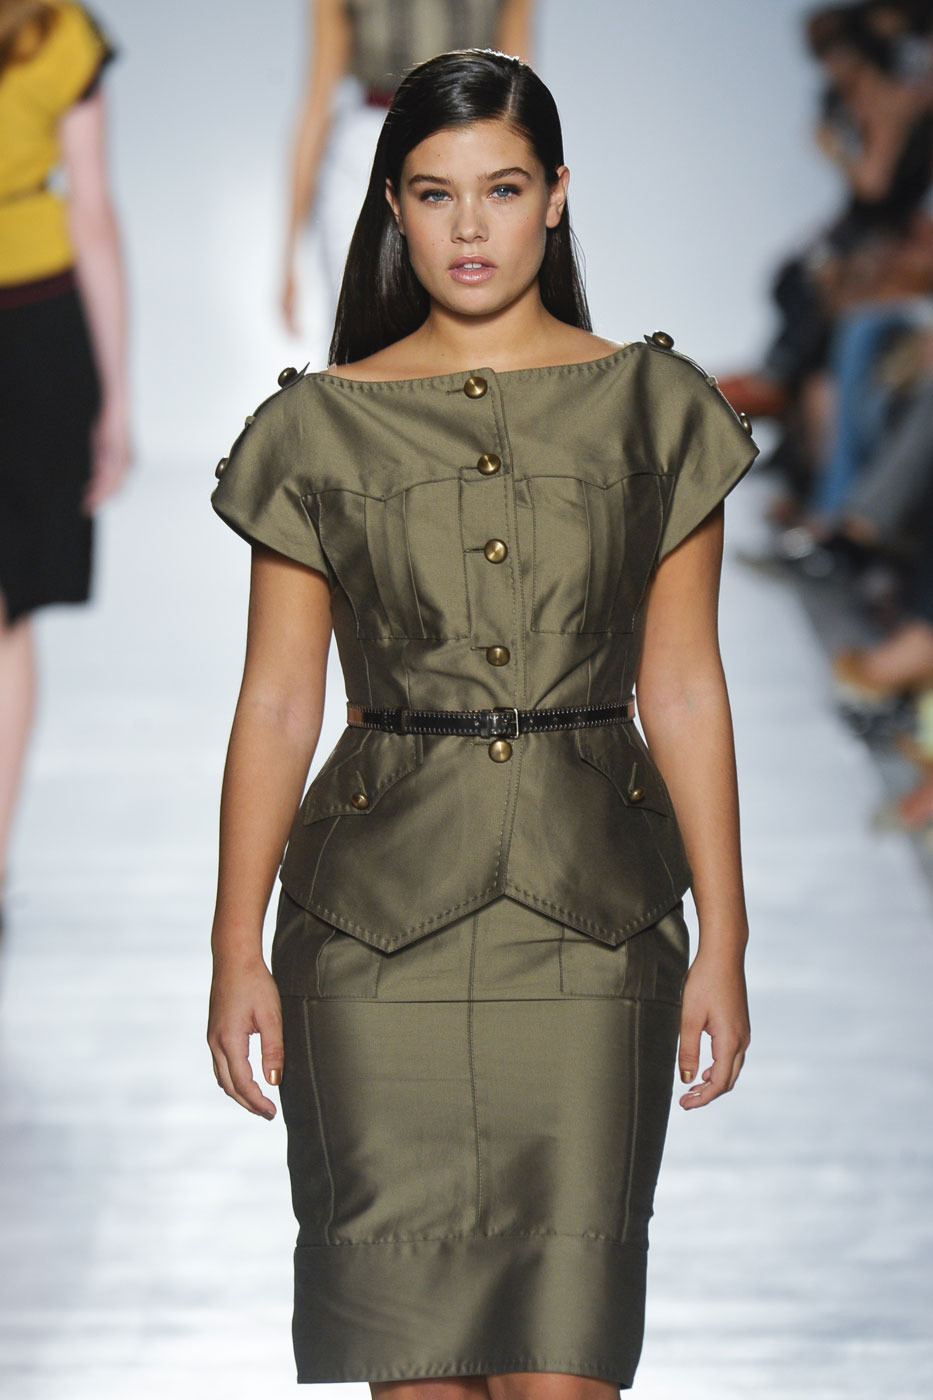 Elena Miro at Milan Fashion Week Spring 2012